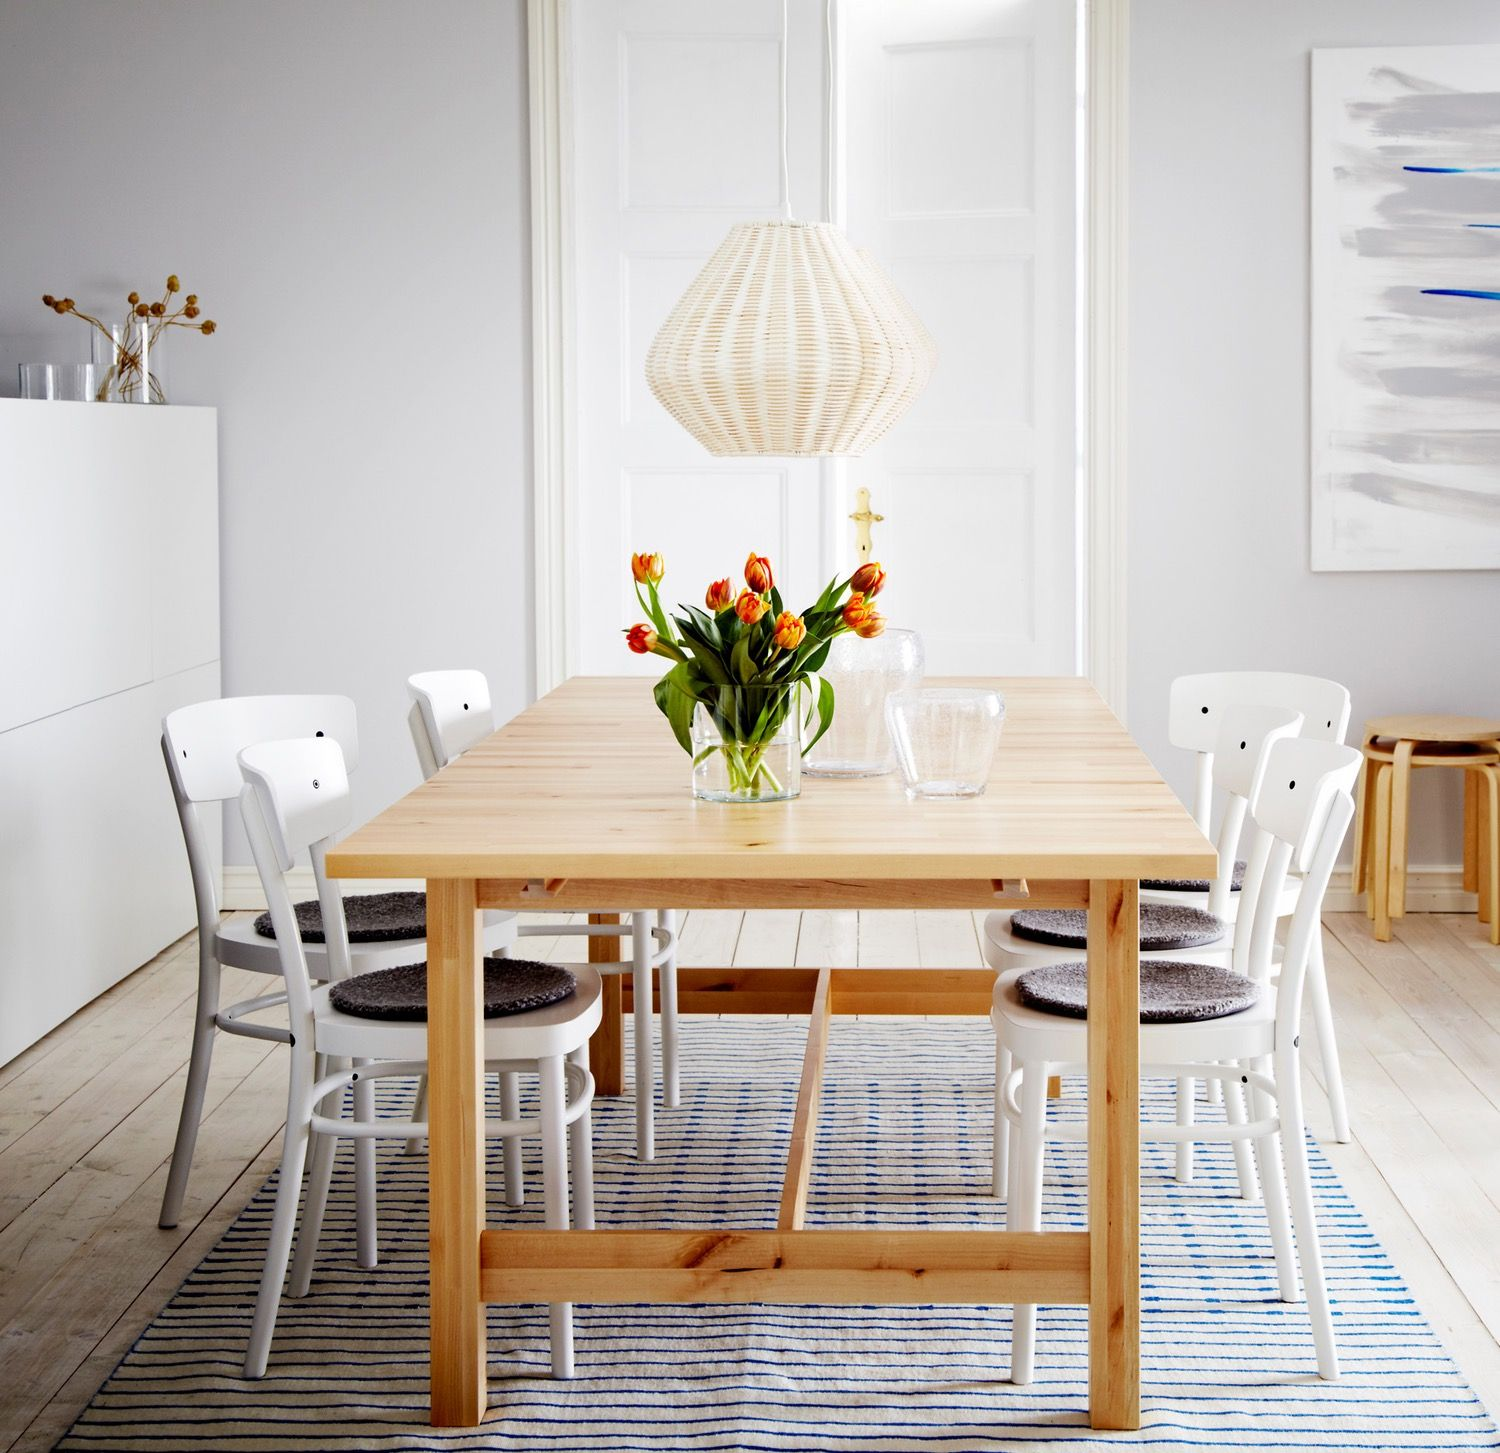 The 10 Best Dining Chairs Under $100  Dining Chairs The O'jays Interesting Cheap Dining Room Sets Under 100 Decorating Inspiration